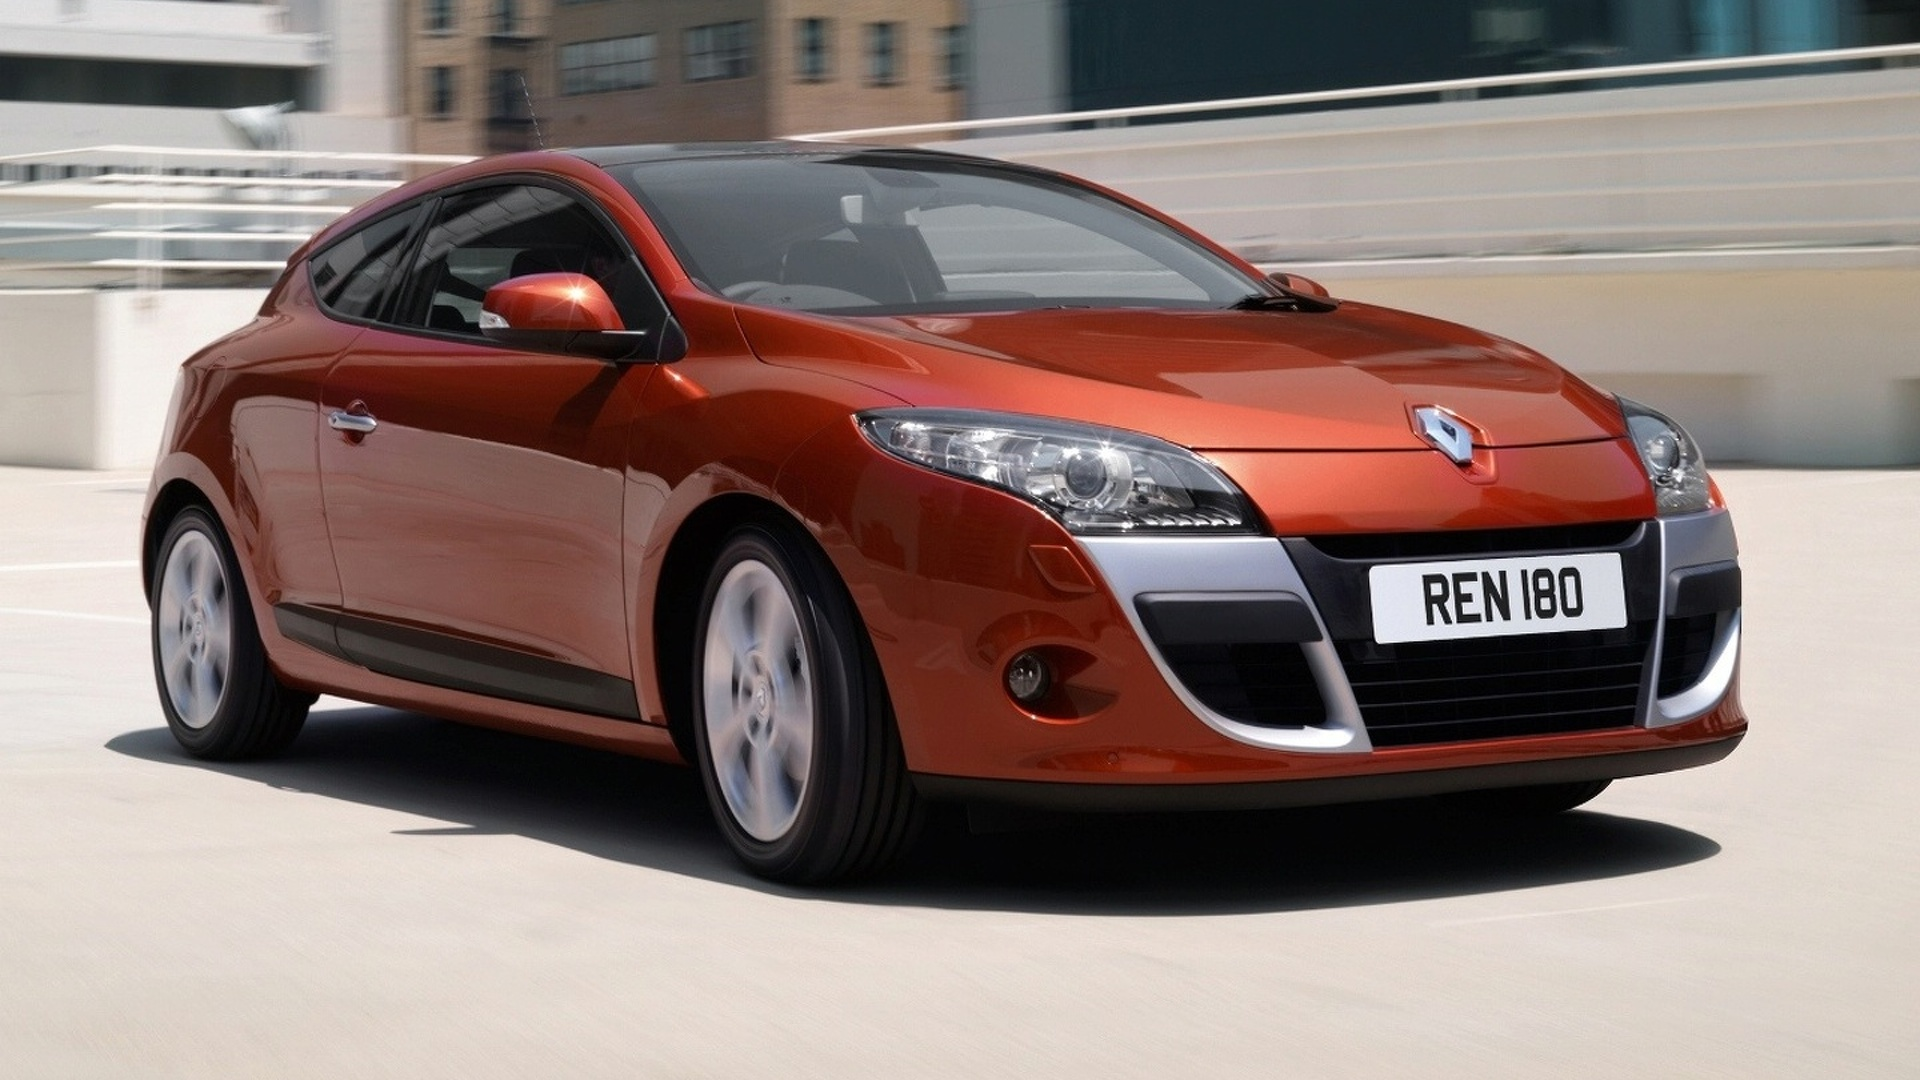 New Renault Megane Coupe UK Pricing to Start at £14,745